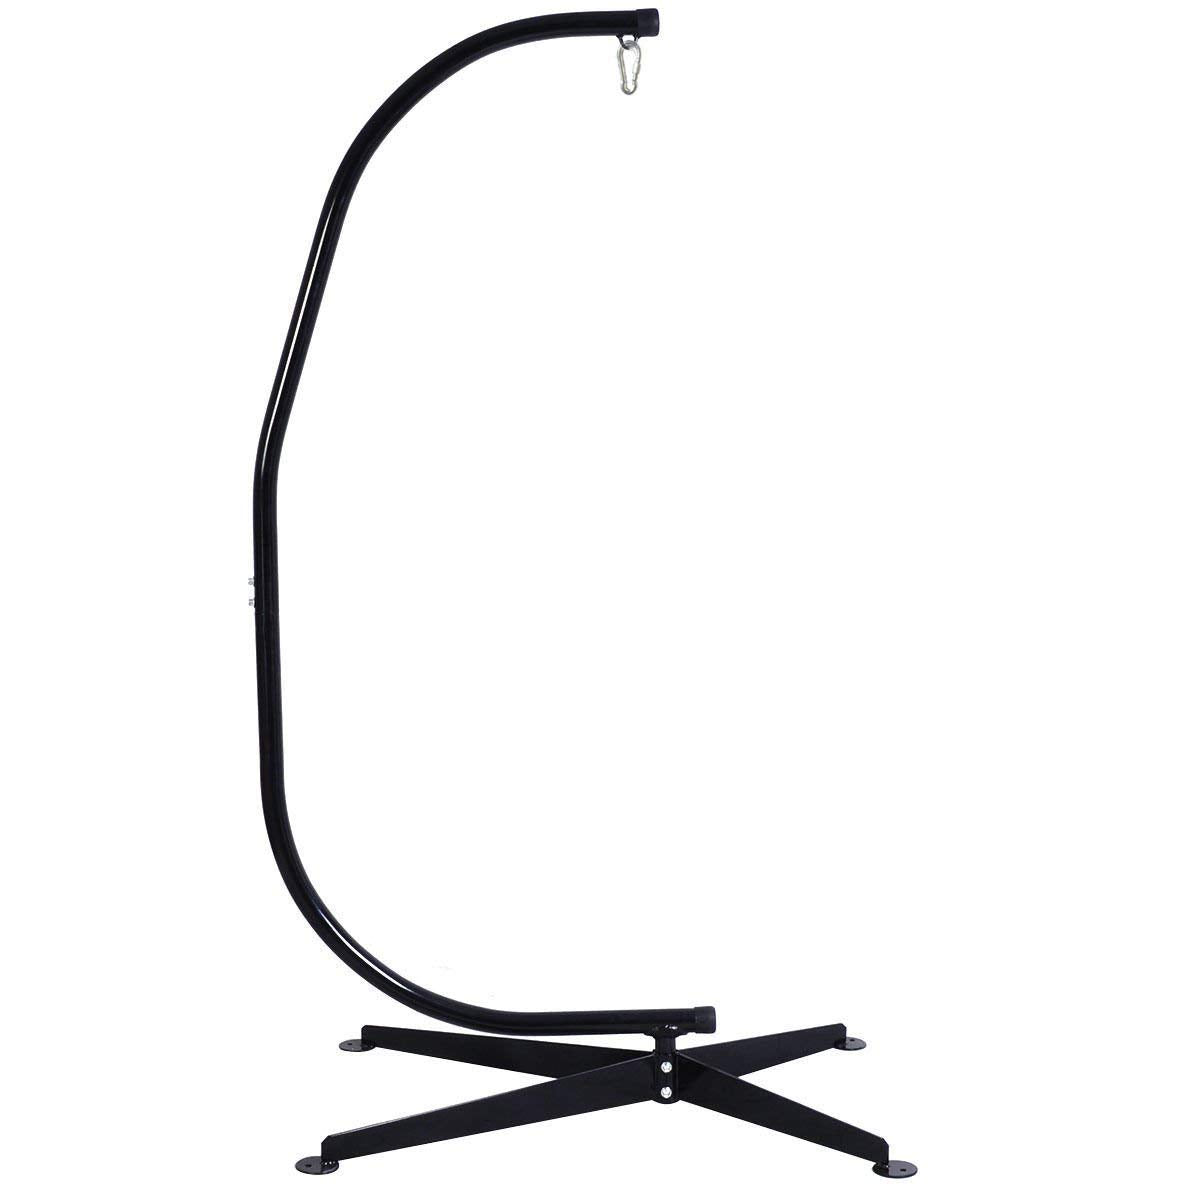 Giantex Hammock Stand, Hanging Hammock Chair C Stand Solid Steel Construction for Hammock Air Porch Swing Chair